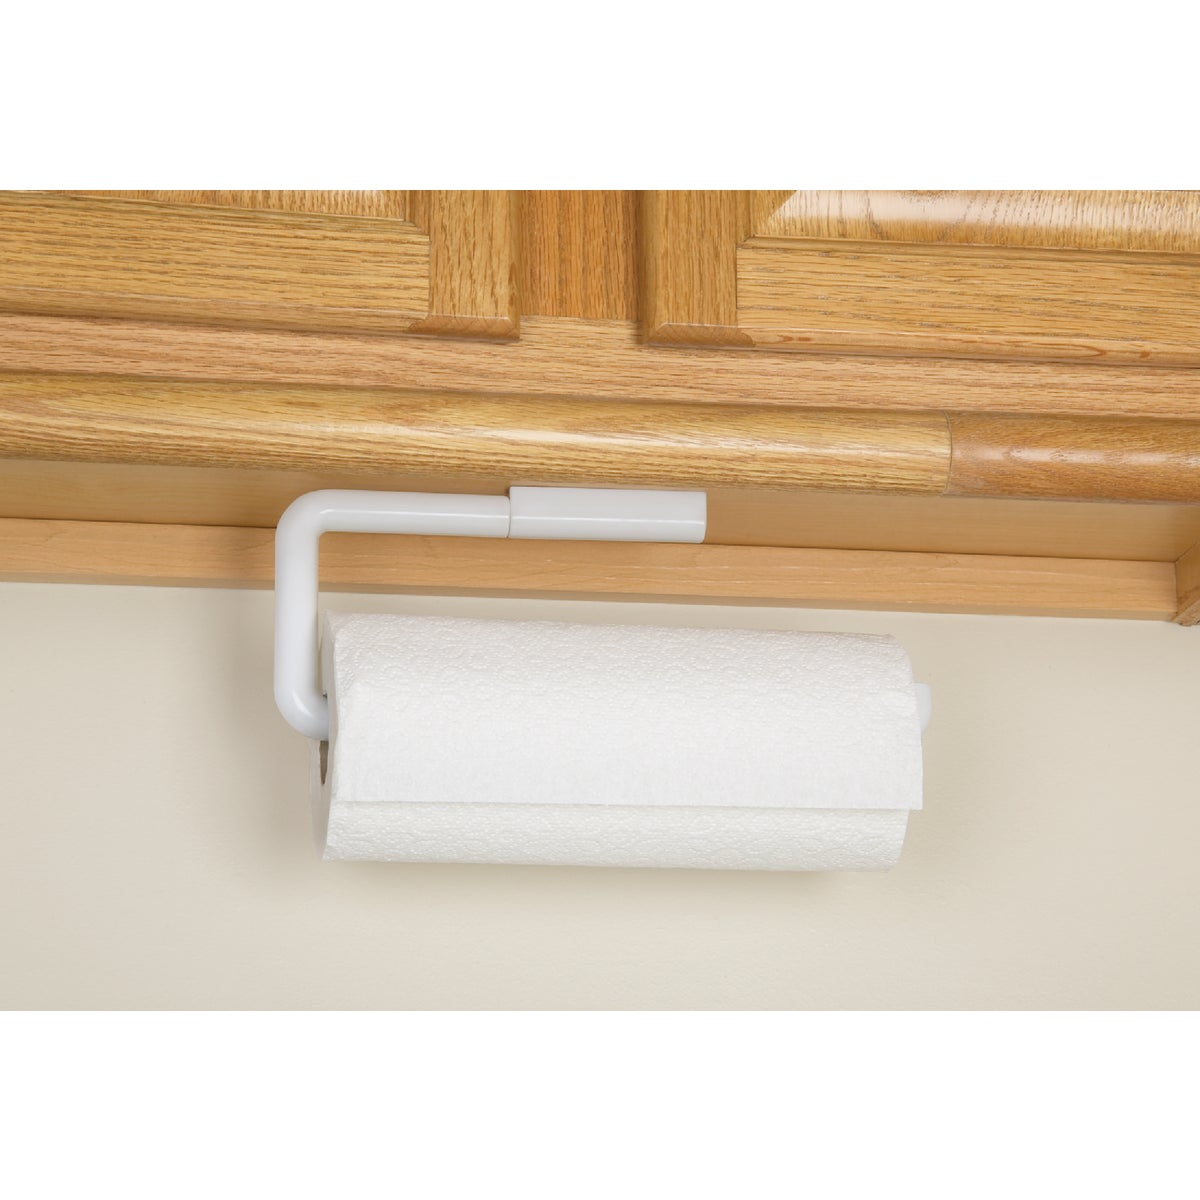 PAPER TOWEL HOLDER - PTH-R-W by Knape & Vogt Mfg Co